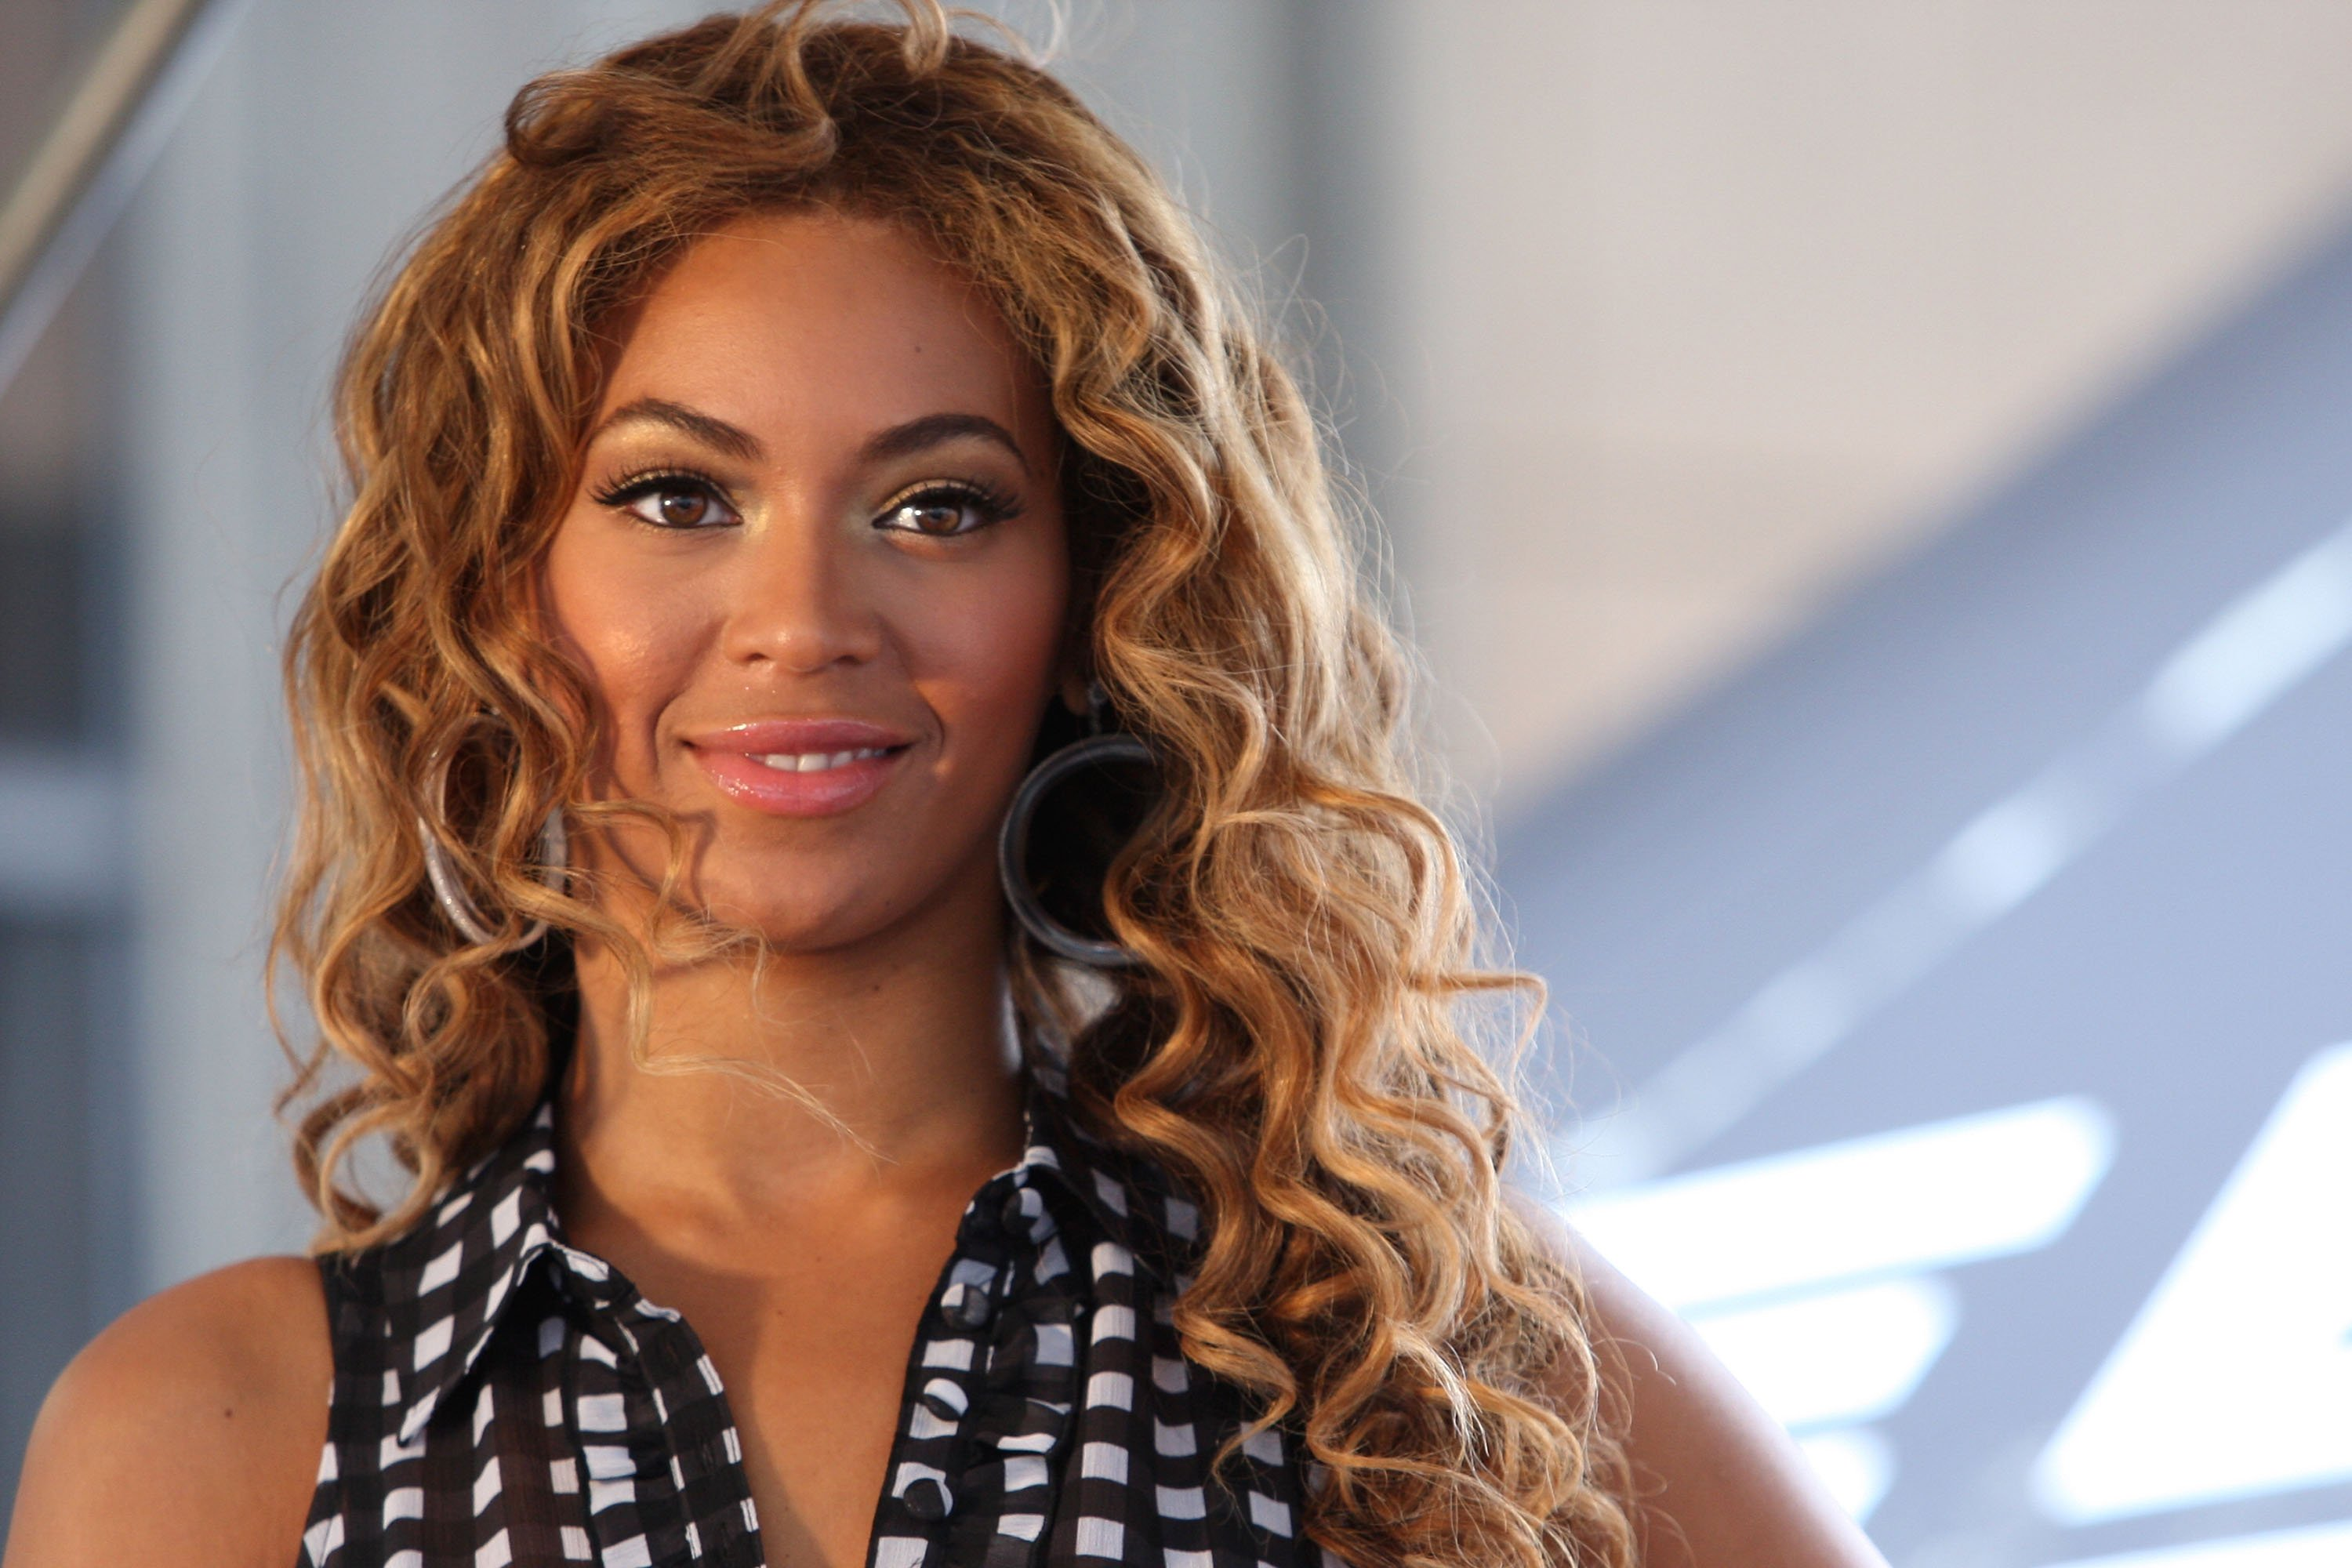 Beyonce attending a hunger relief initiative kickoff in New York in June 2009. | Photo: Getty Images